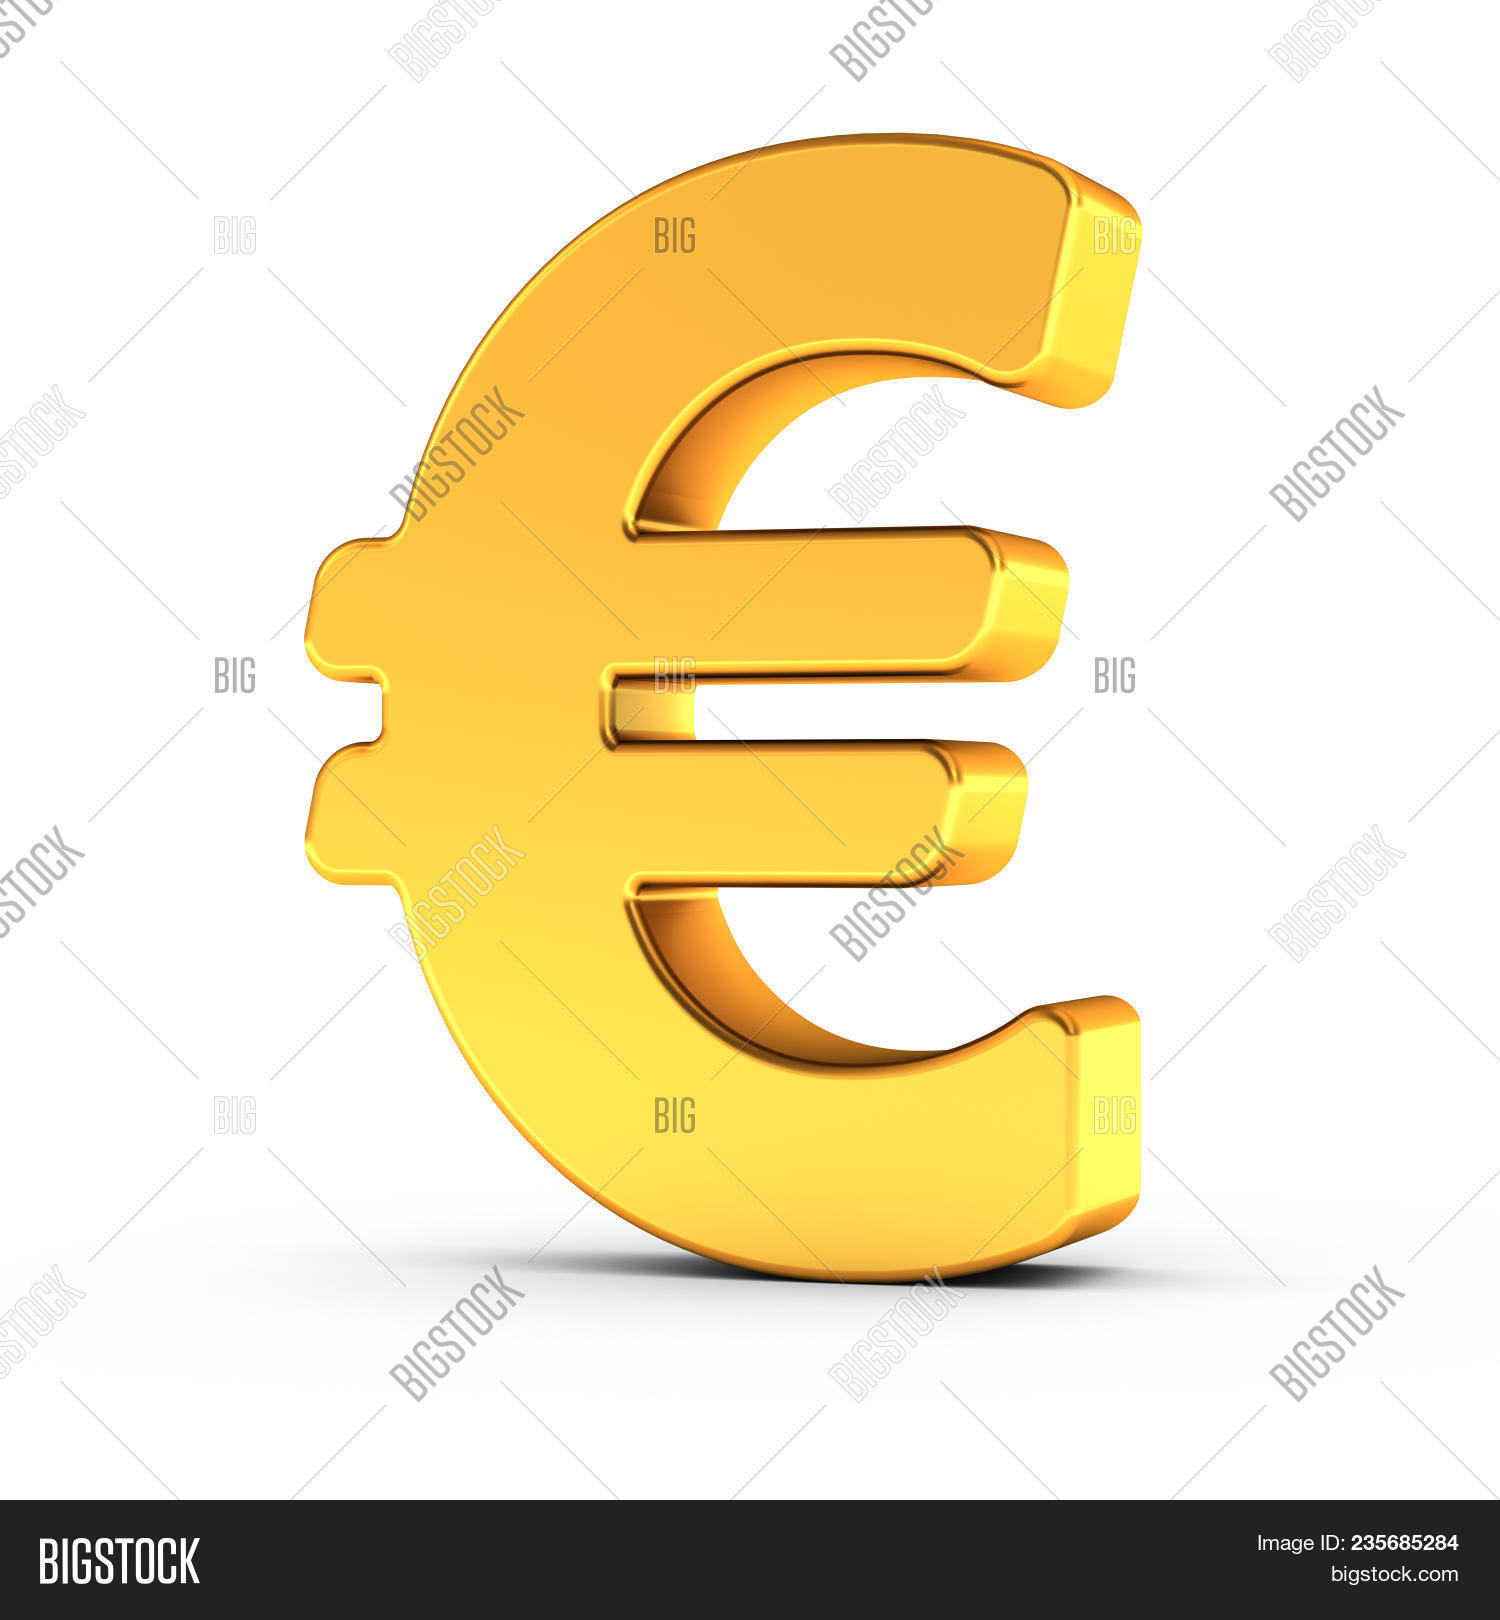 3d Illustration Euro Image Photo Free Trial Bigstock